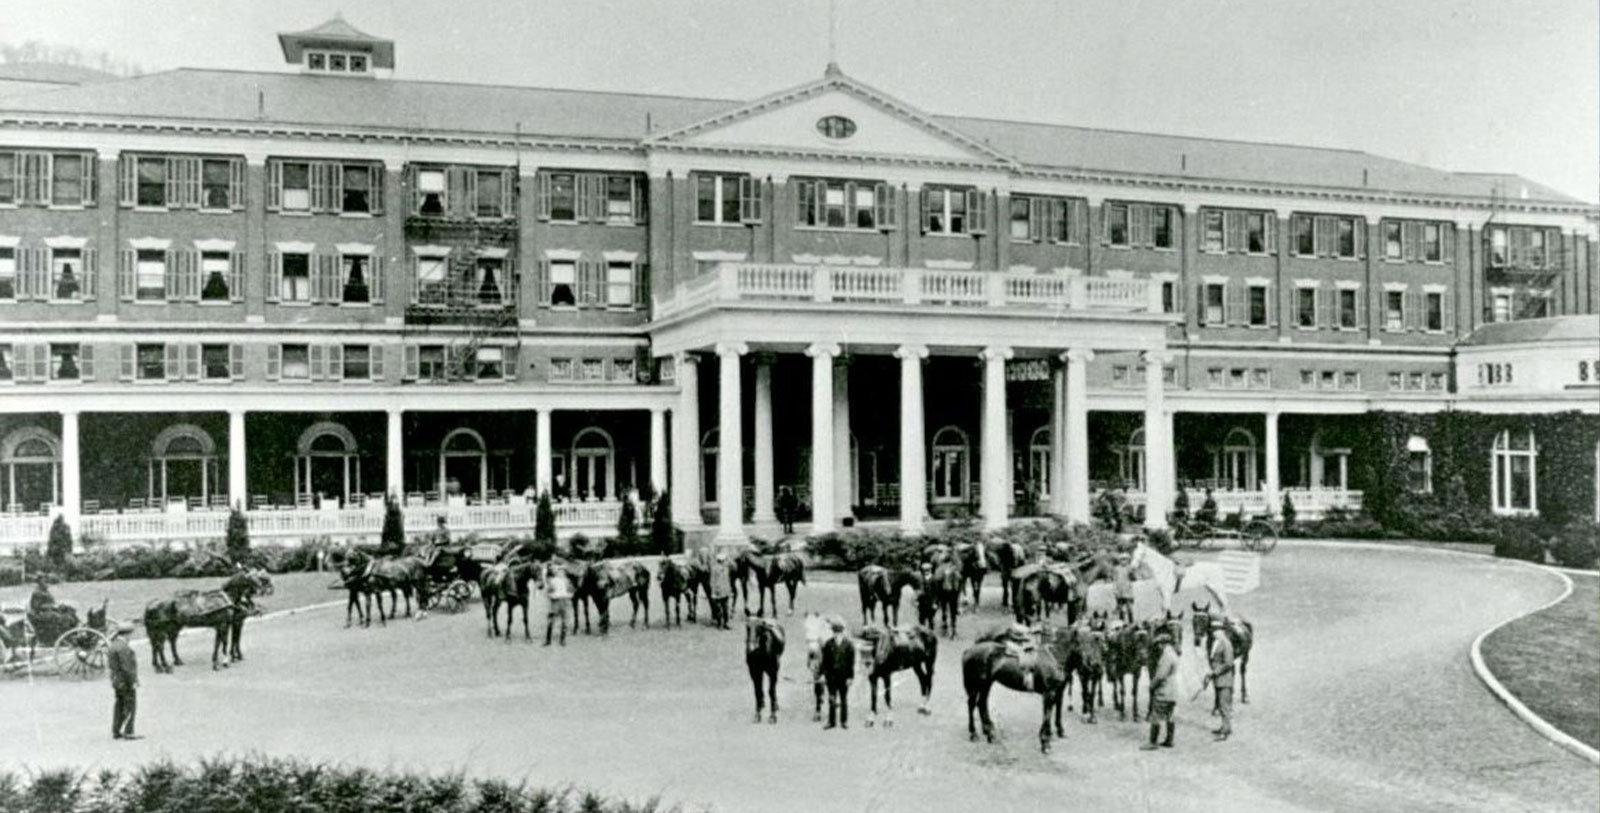 Historic Image of Hotel Front Entrance at The Omni Homestead Resort, 1766, Member of Historic Hotels of America, in Hot Springs, Virginia, Discover